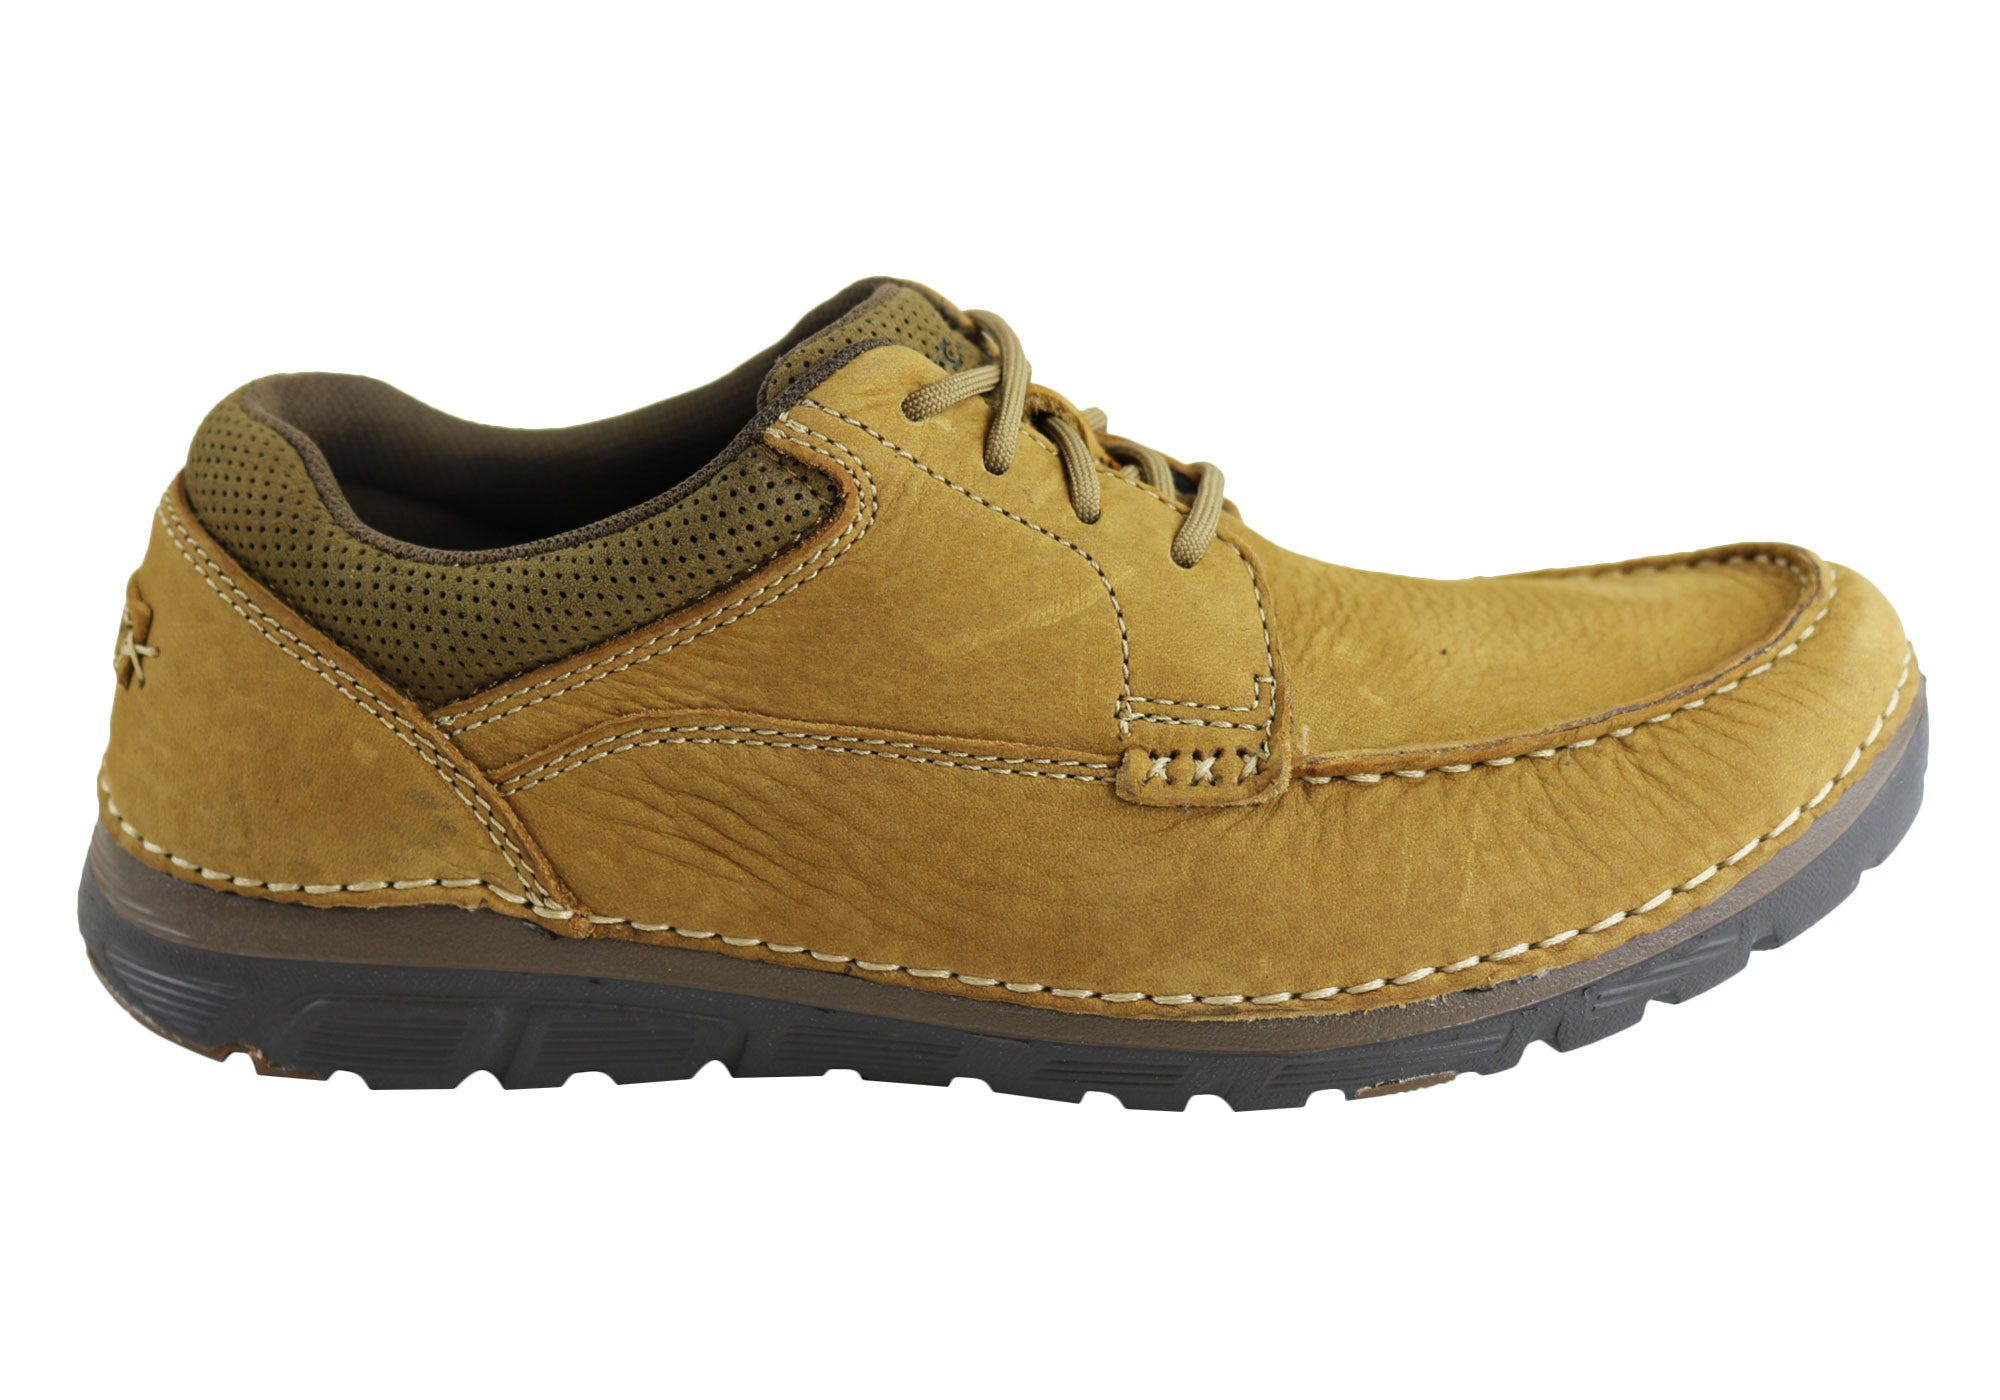 838354bbbace3 Rockport RocSports Lite ZoneCush Wide Fit Mens Shoes